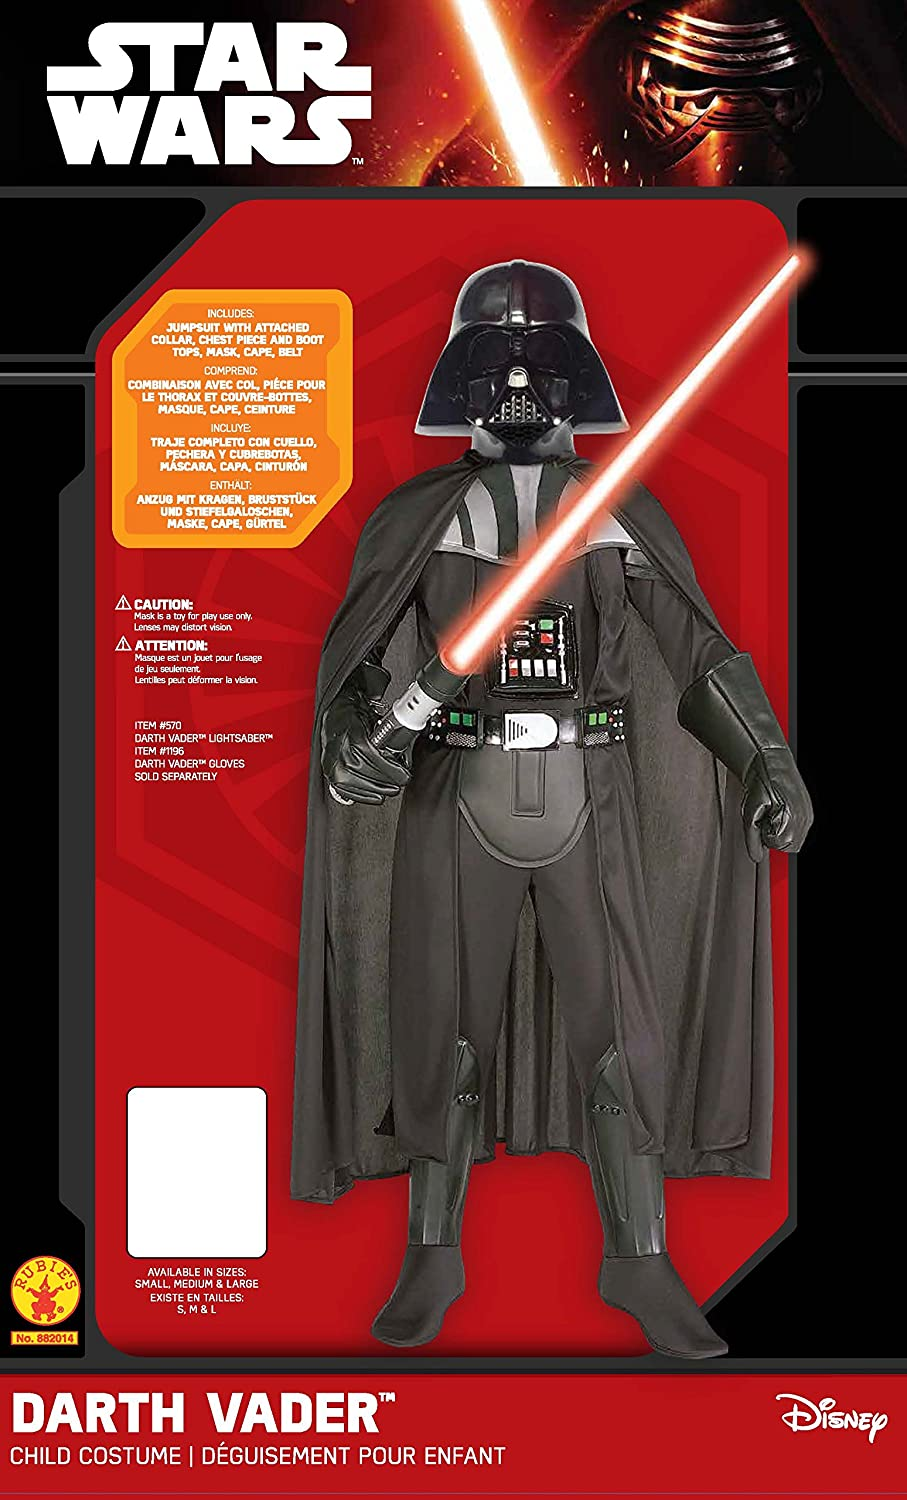 Amazon.com: Star Wars Deluxe Darth Vader Deluxe Child Costume, Large (12 - 14): Toys & Games